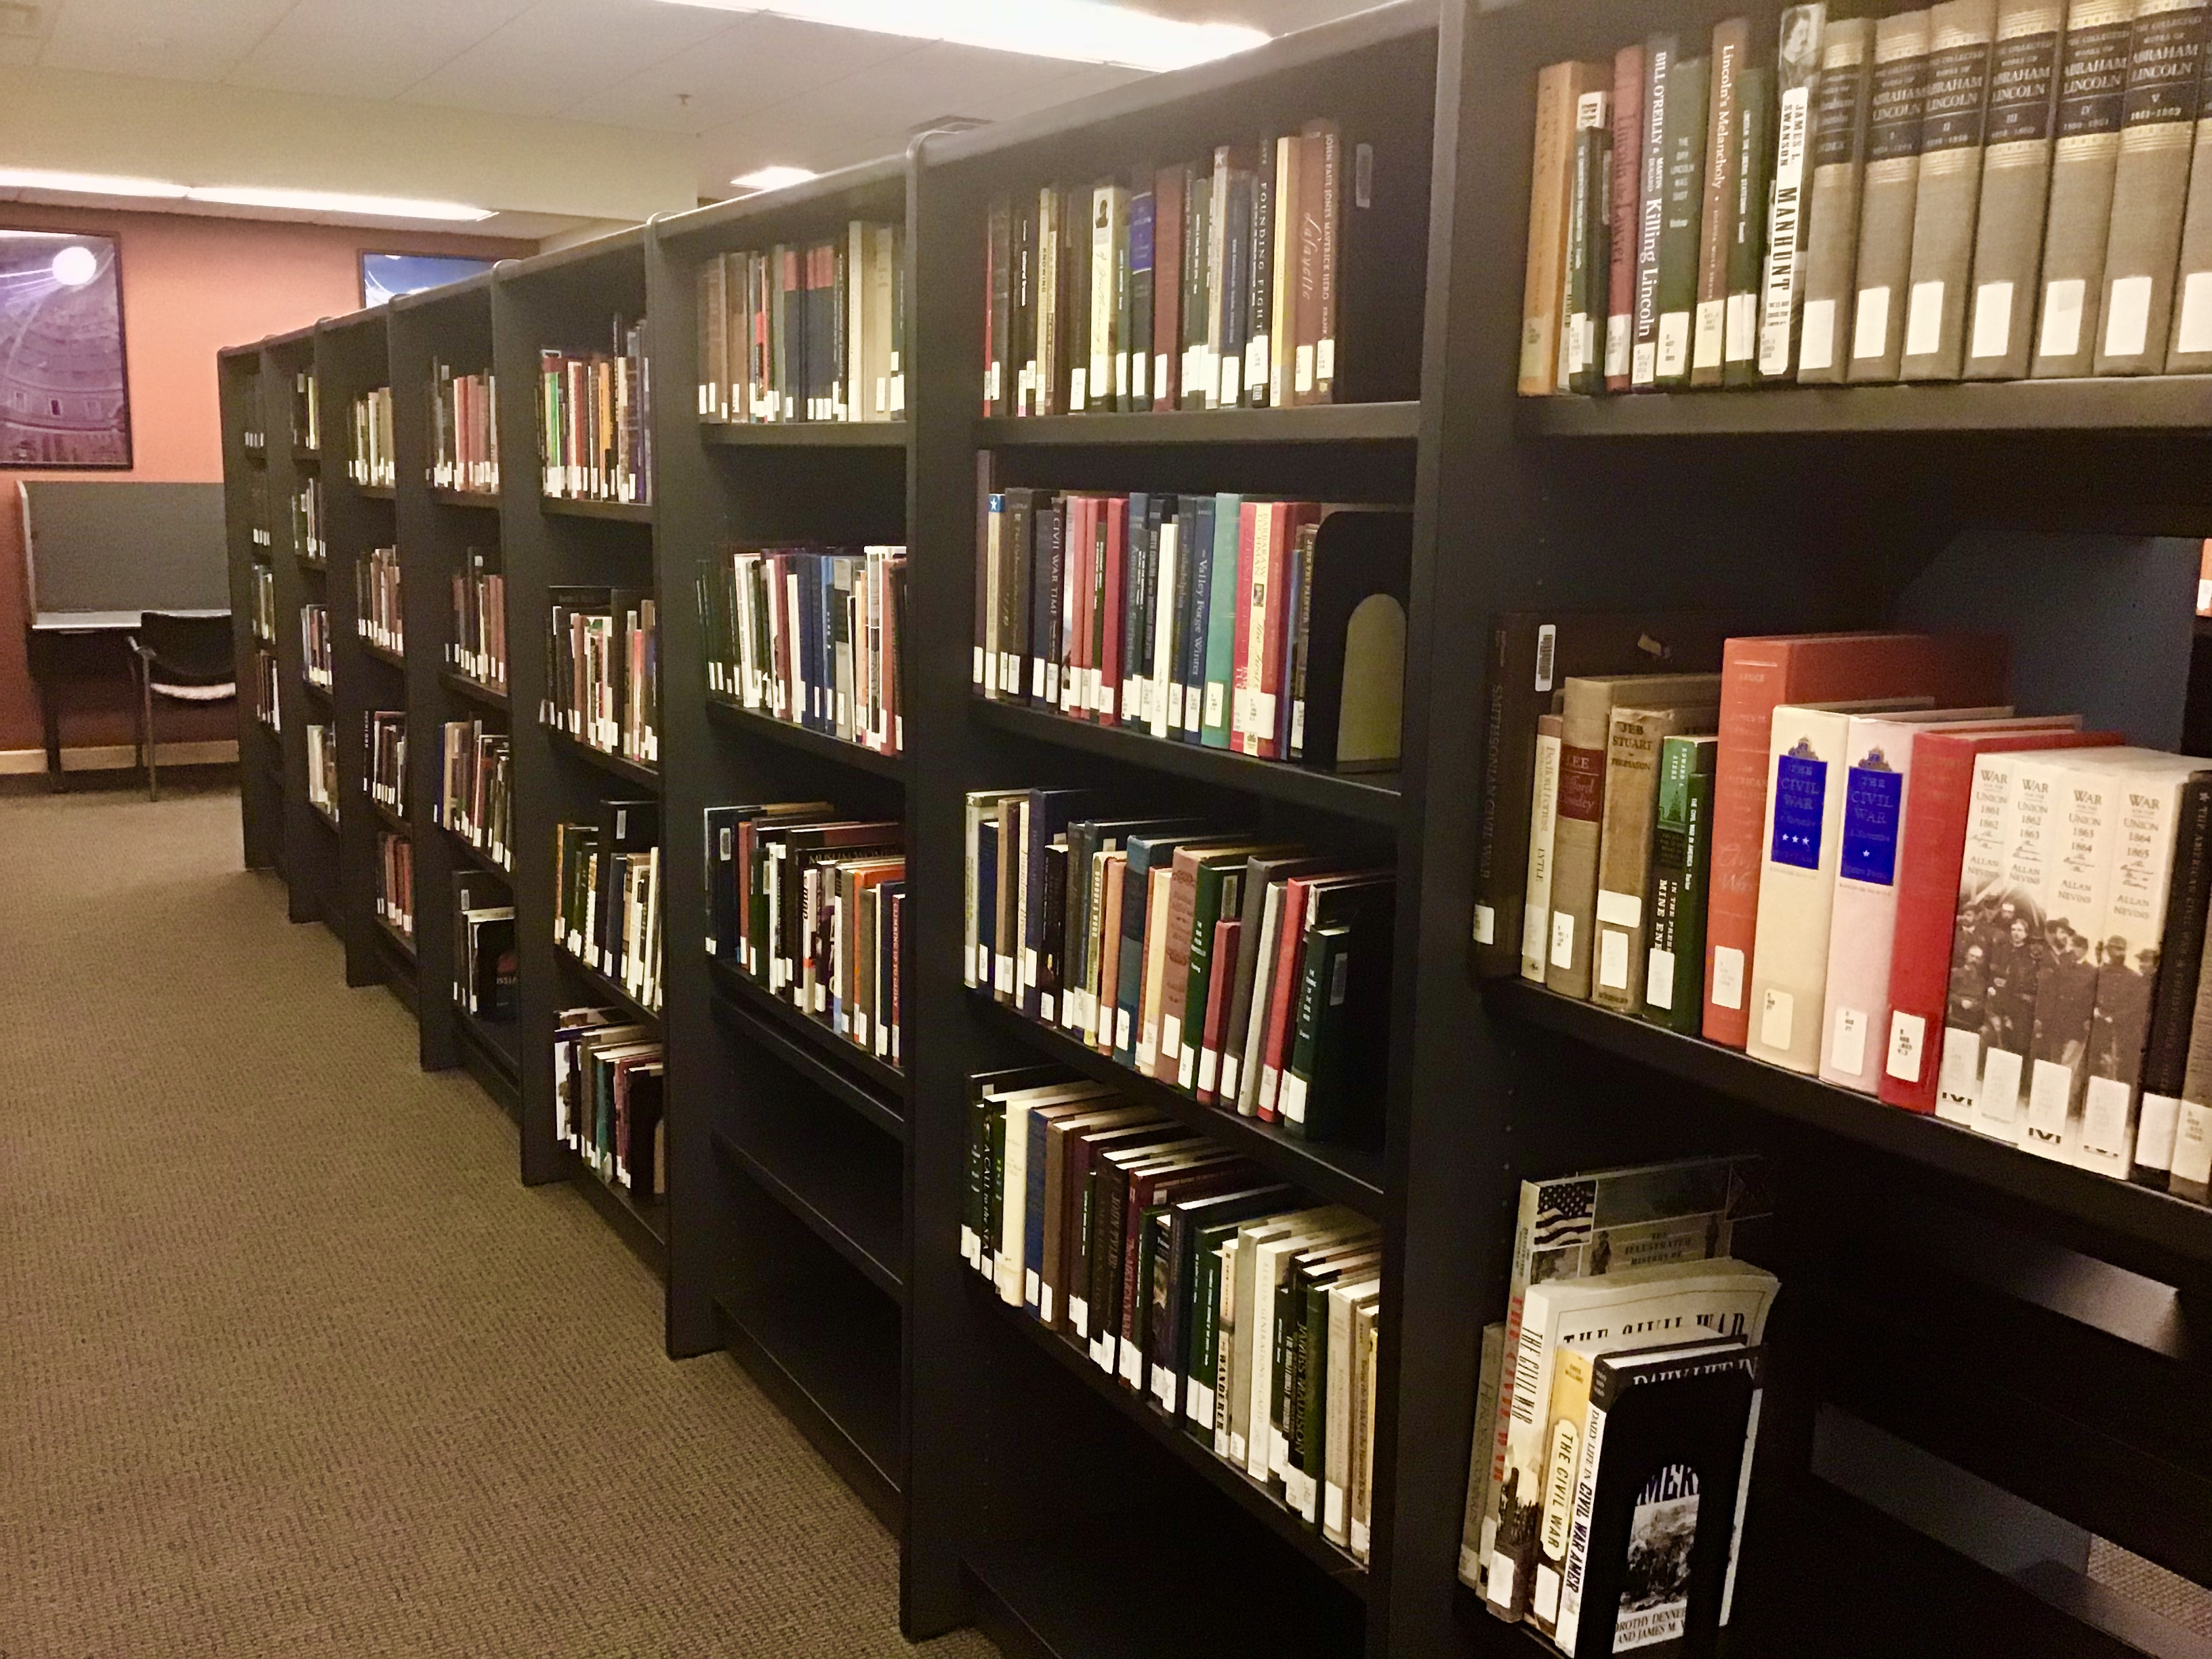 Book shelves at Camden Library